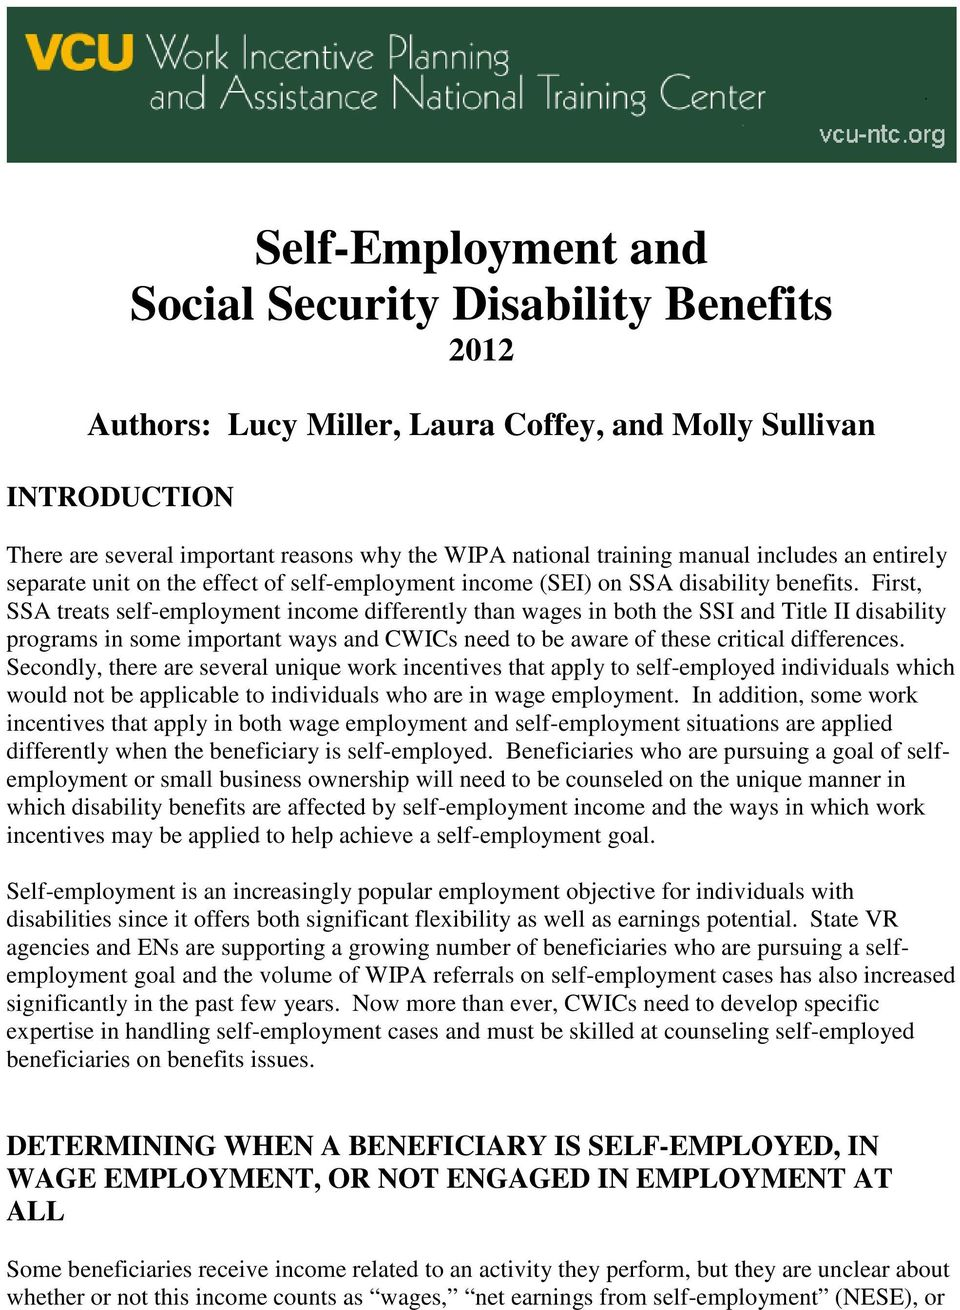 First, SSA treats self-employment income differently than wages in both the SSI and Title II disability programs in some important ways and CWICs need to be aware of these critical differences.